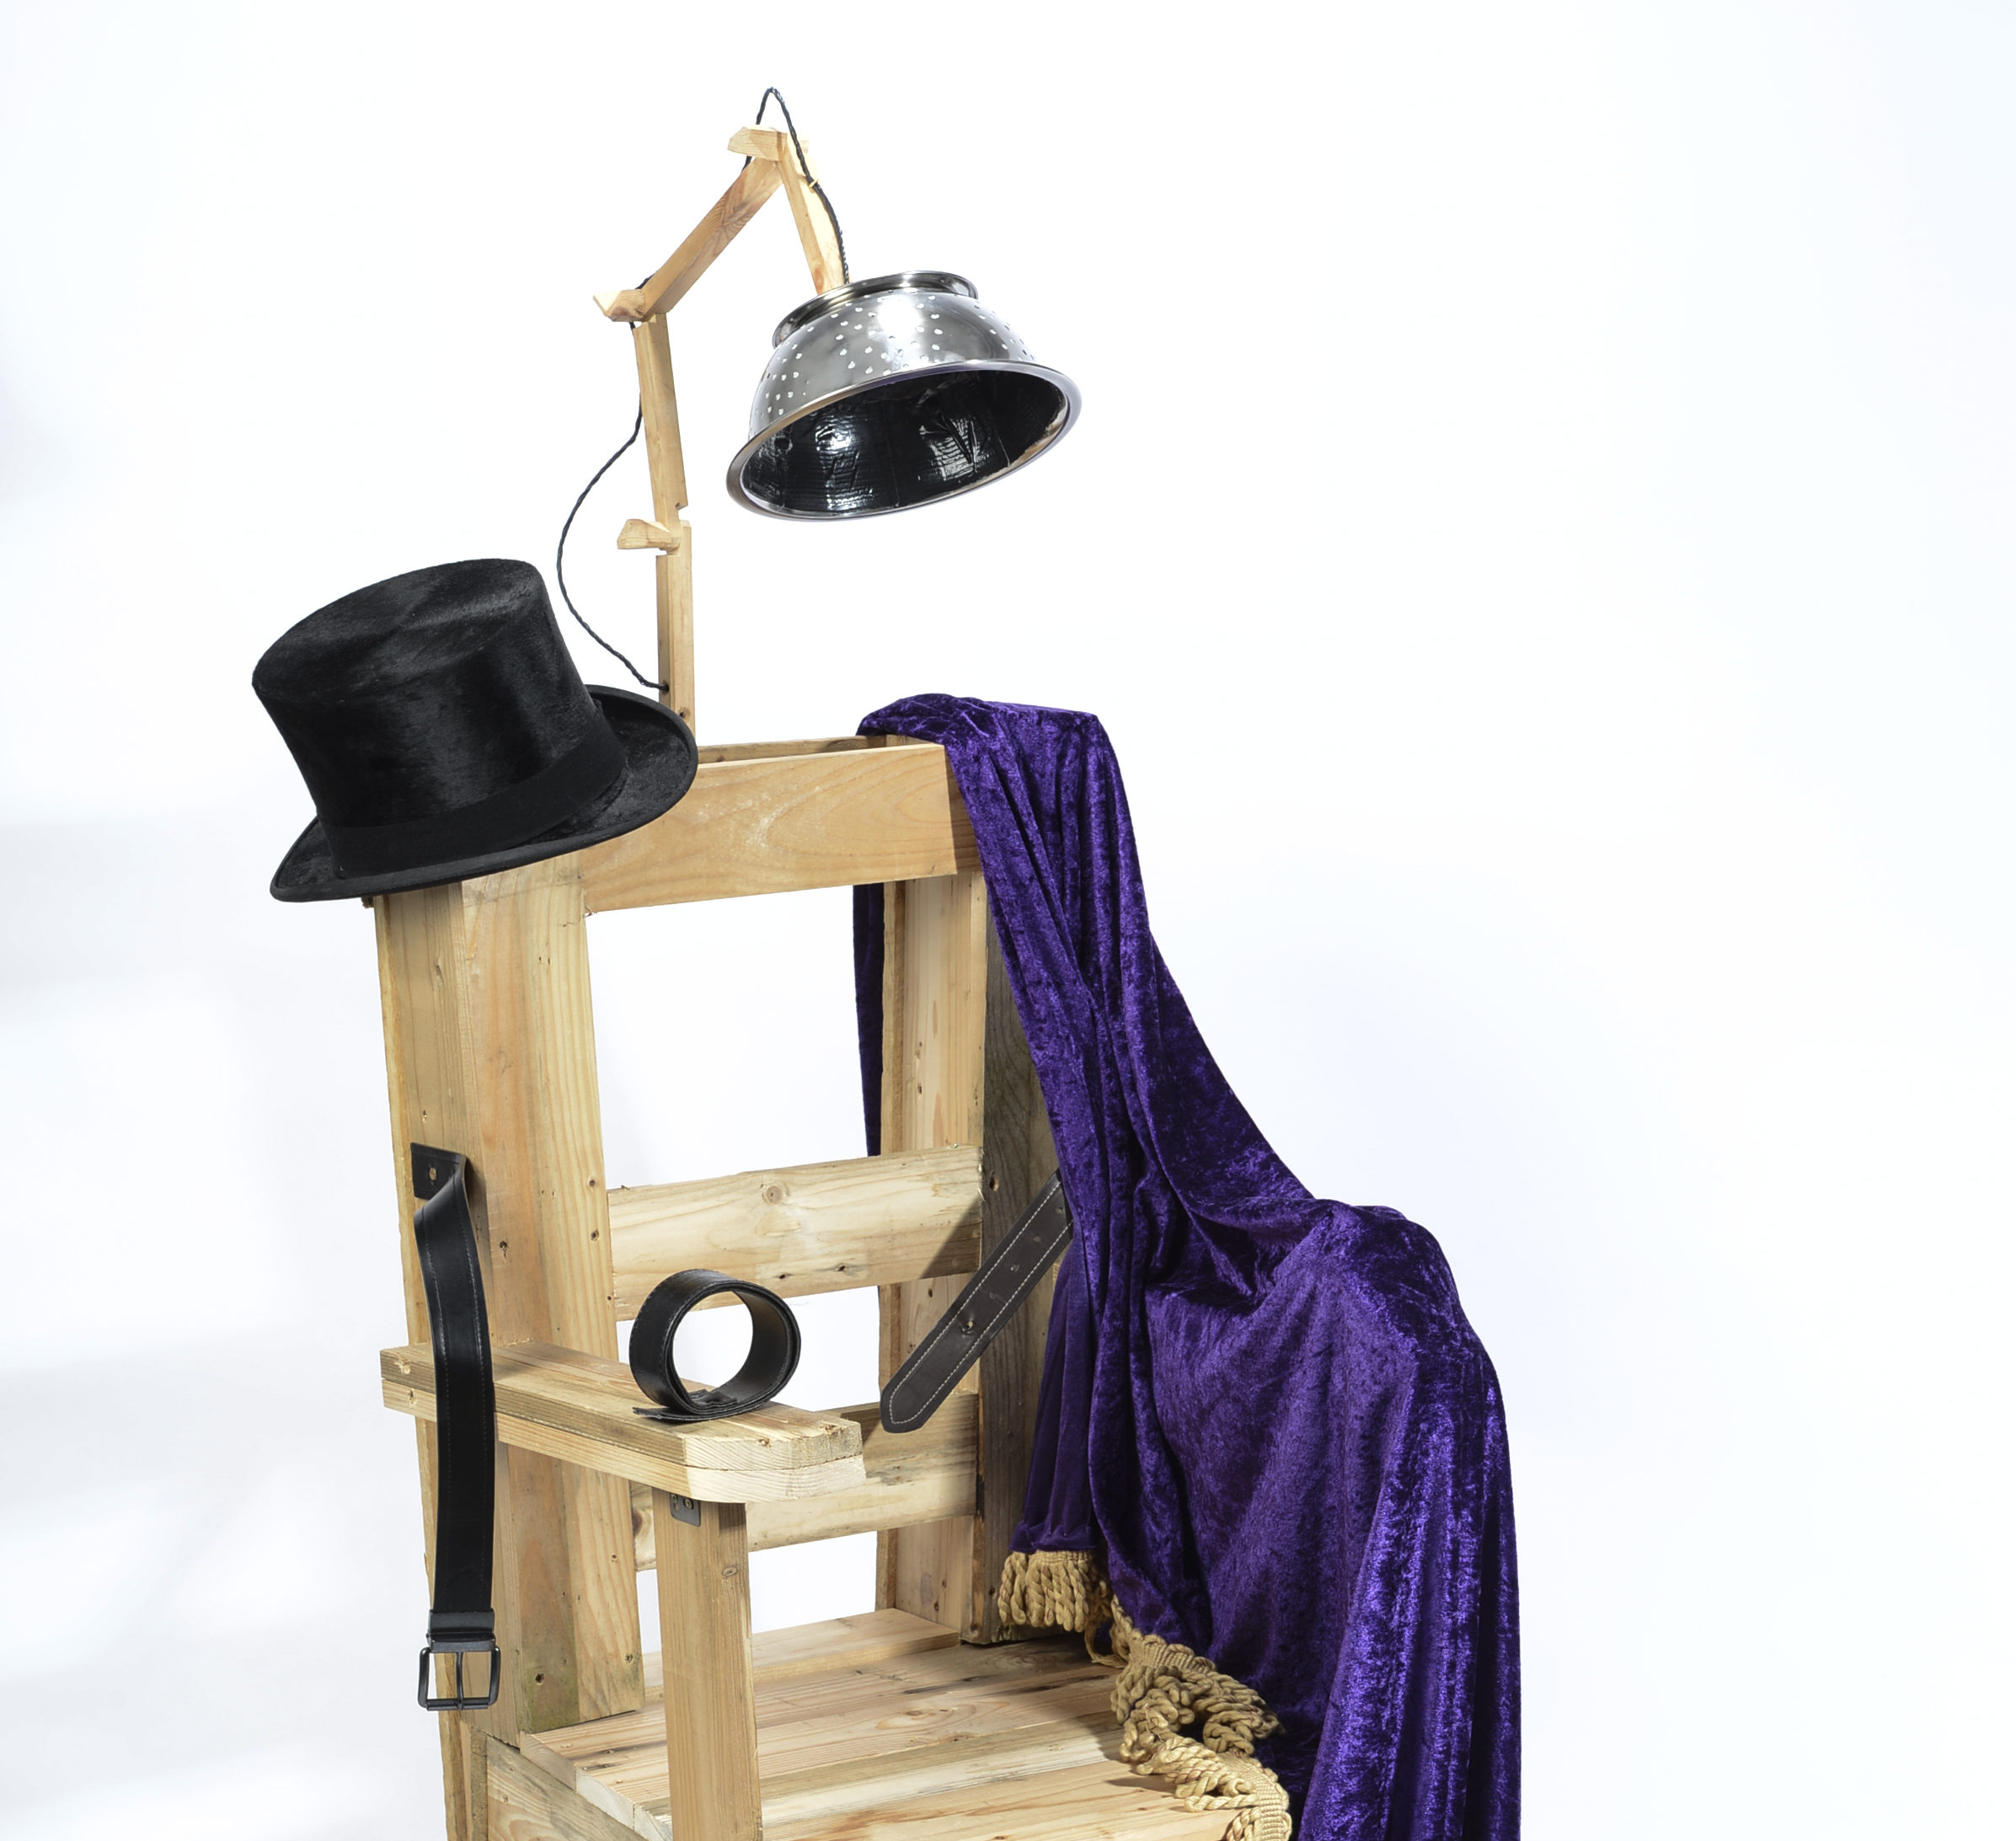 The Electric Wizard, Walford Bodie, the infamous Aberdeenshire magician wowed Victorian society with his use of an electric chair in his act